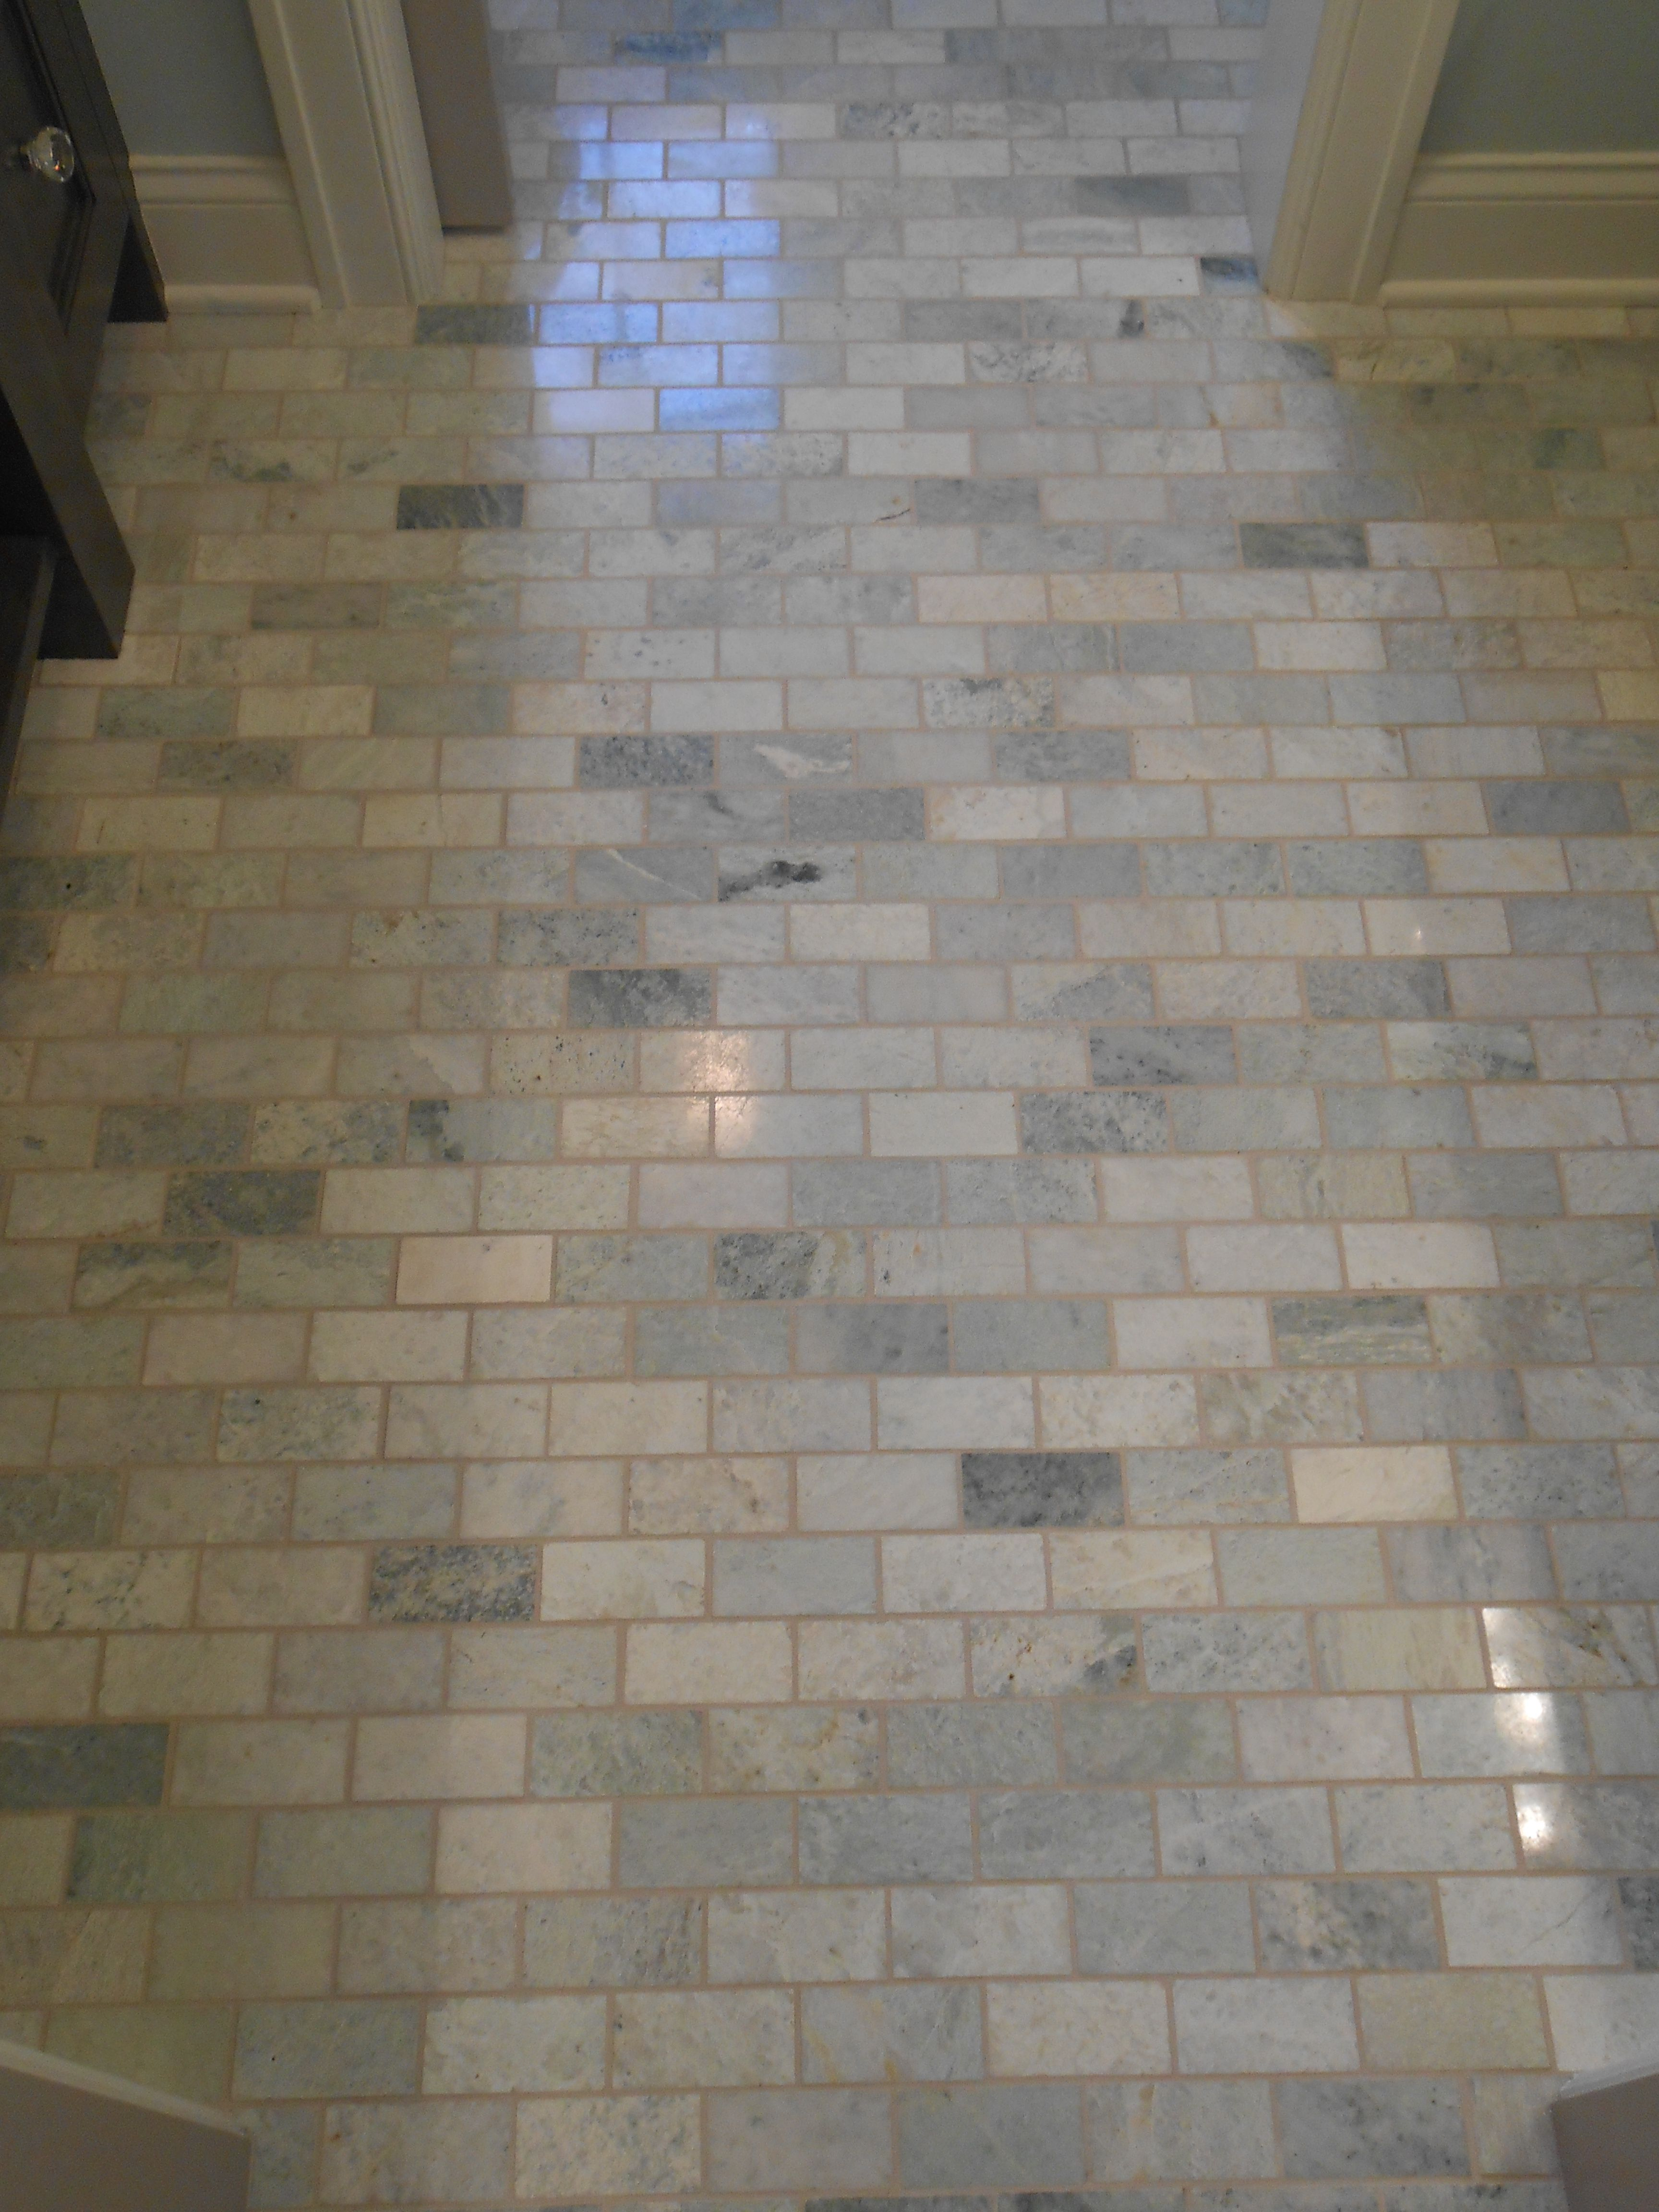 3x6 brick set tile on the floor beautiful bathrooms pinterest 3x6 brick set tile on the floor dailygadgetfo Images